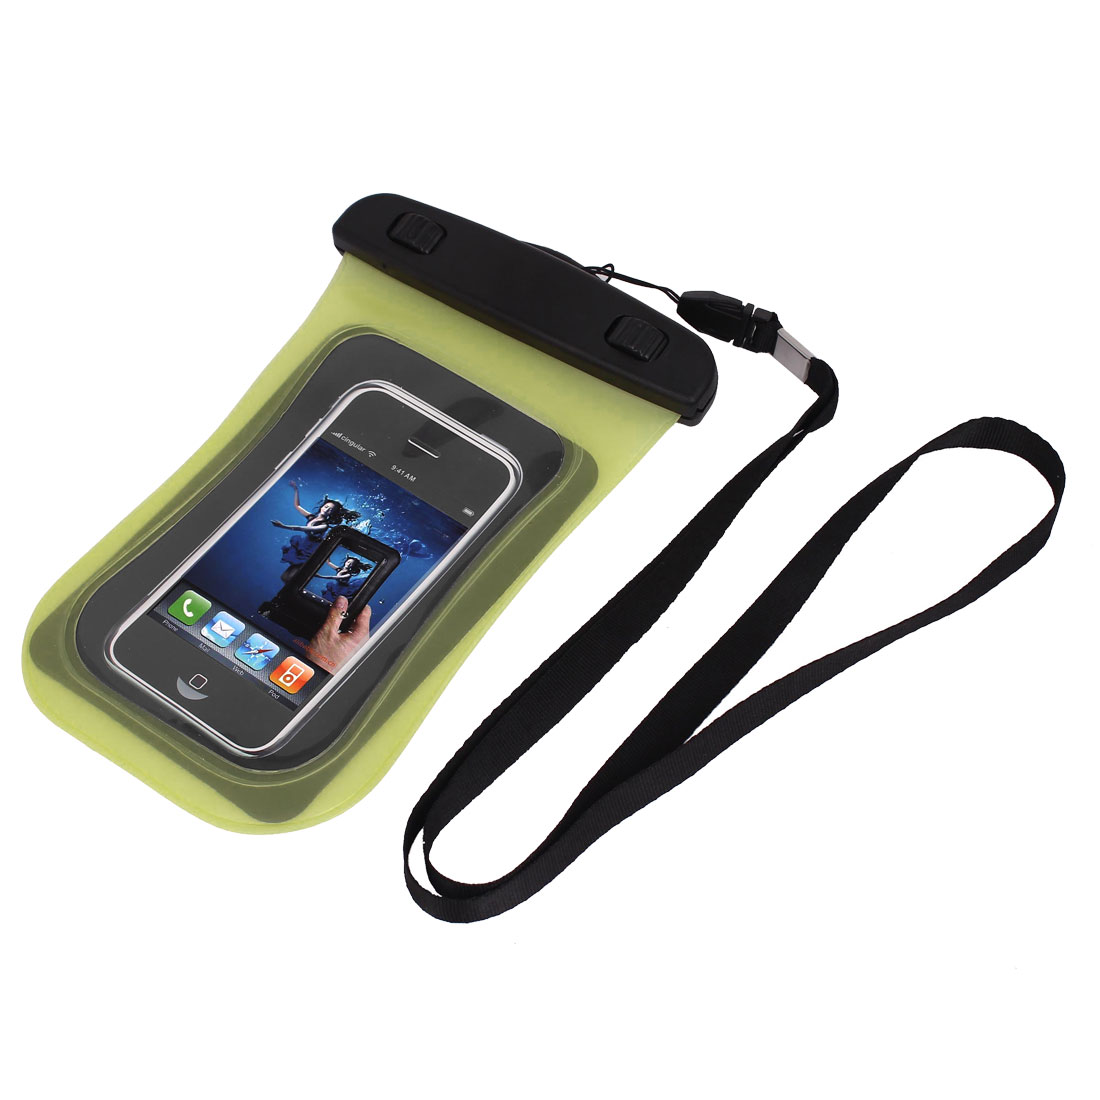 Universal Waterproof Case Dry Bag Protective Cover Pouch Yellow for Cell Phone